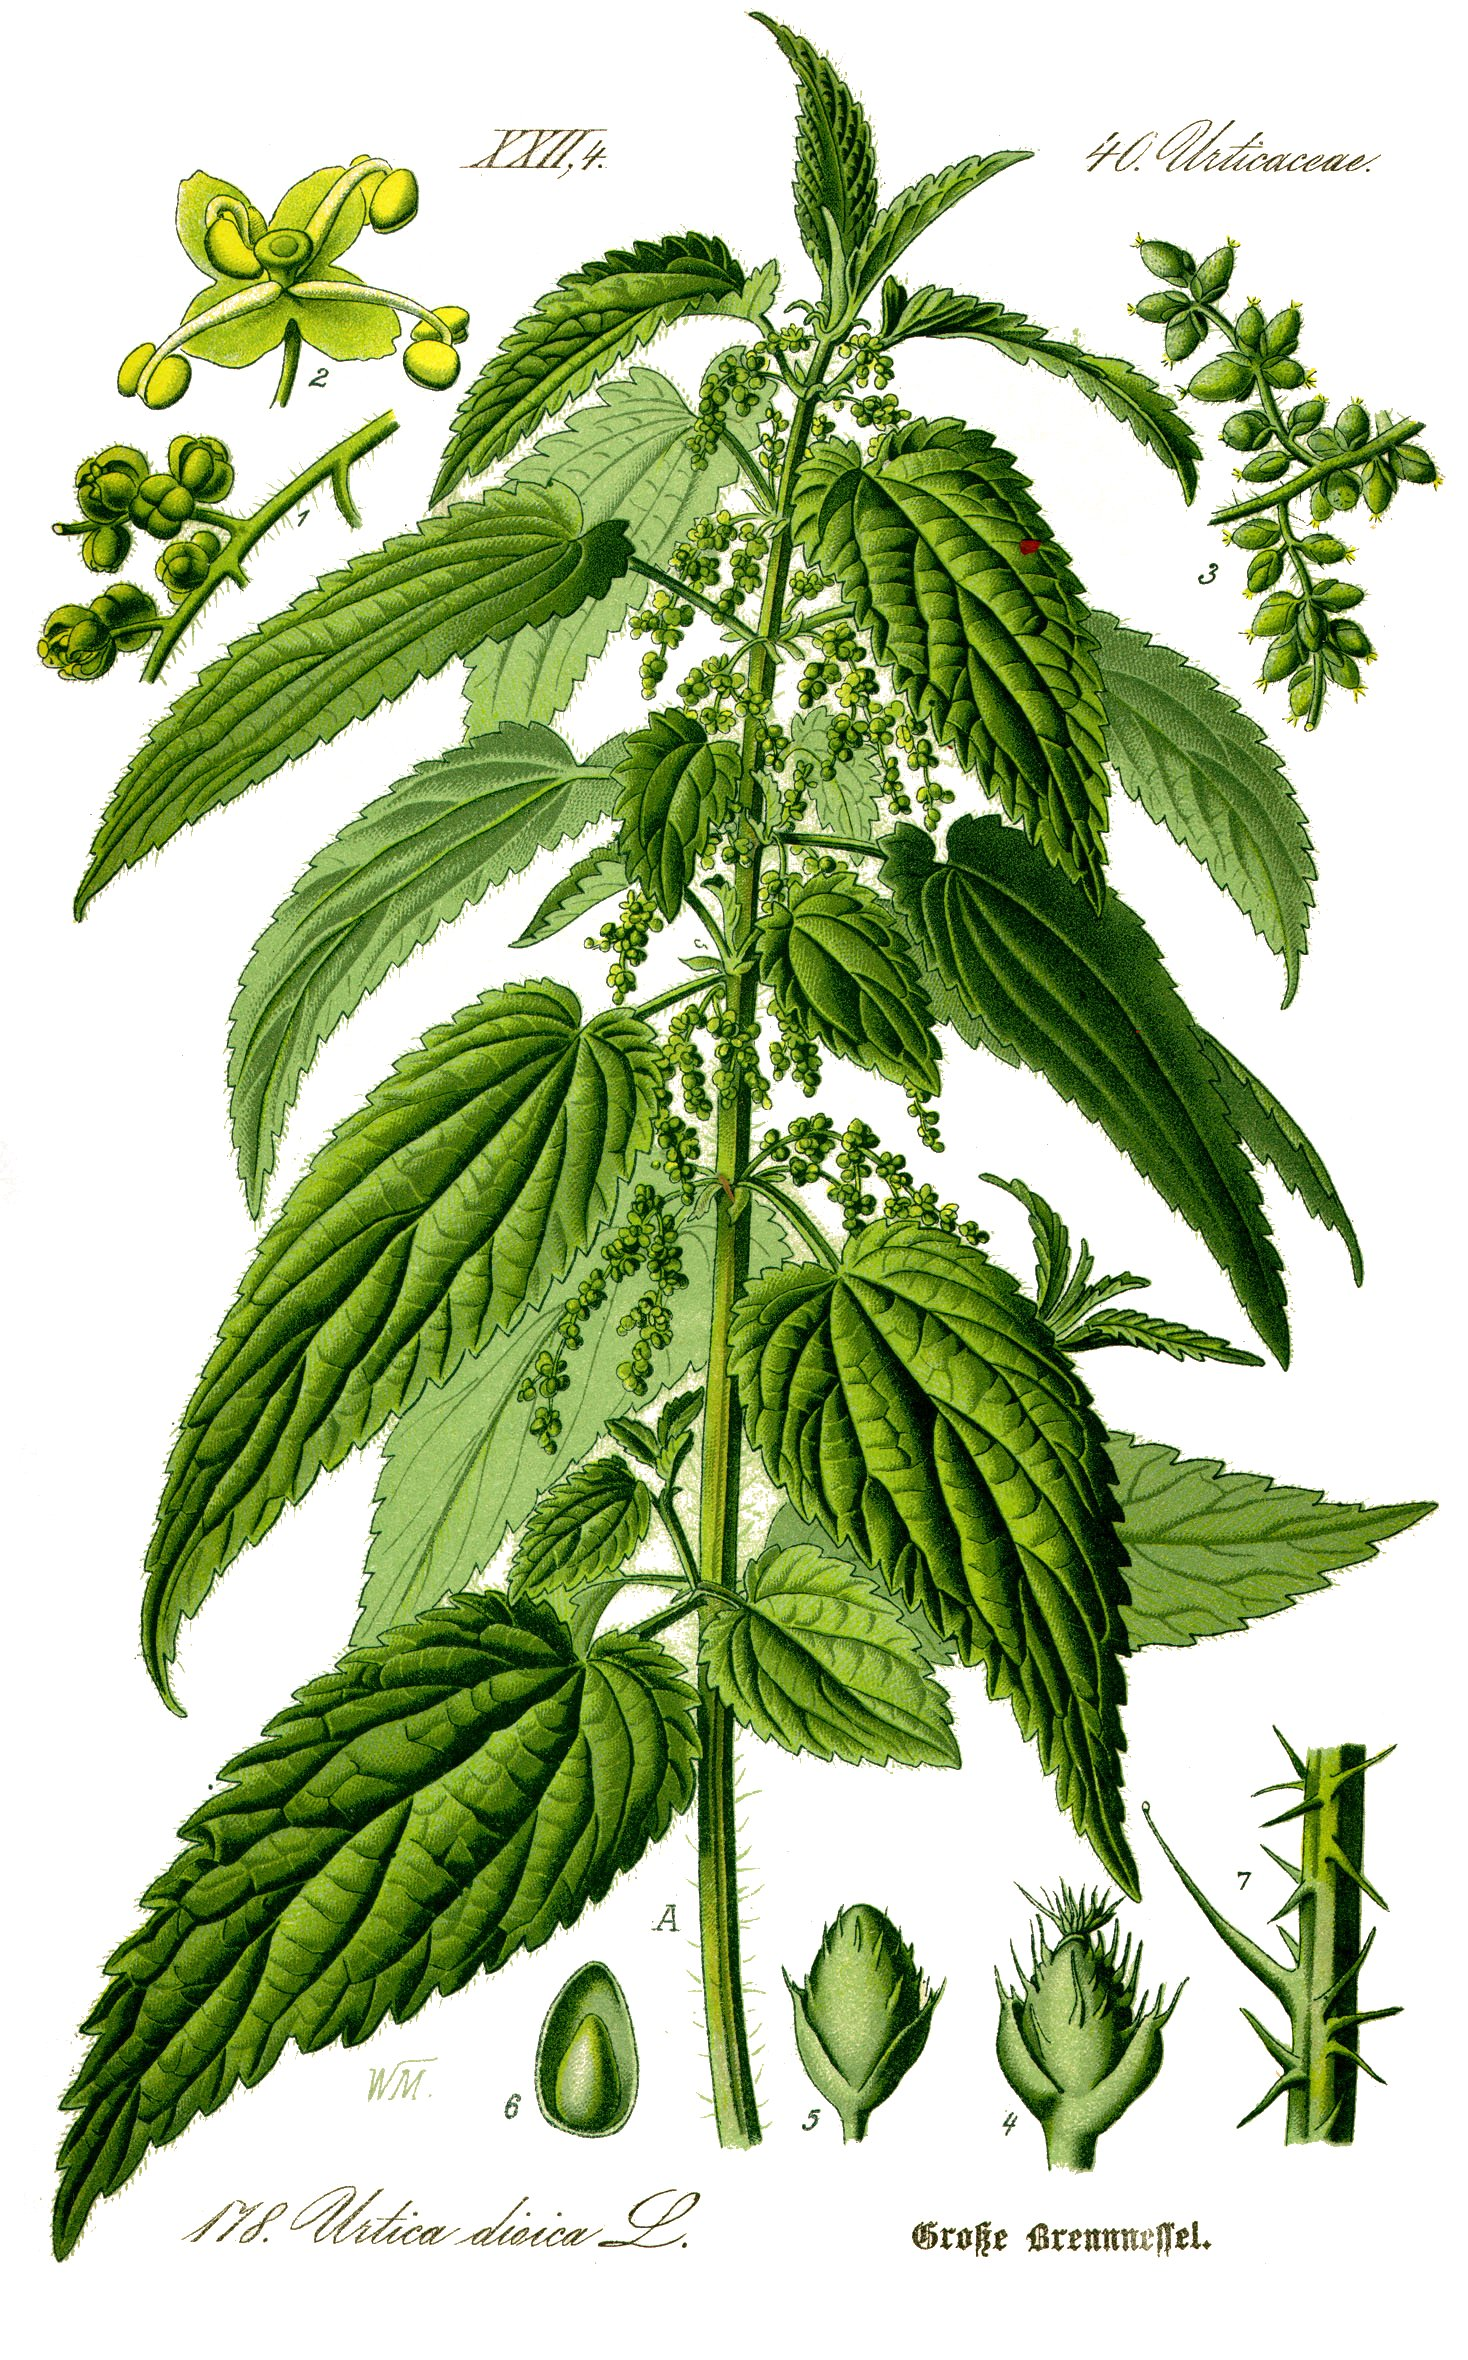 upload.wikimedia.org/wikipedia/commons/d/dc/Illustration_Urtica_dioica0_clean.jpg